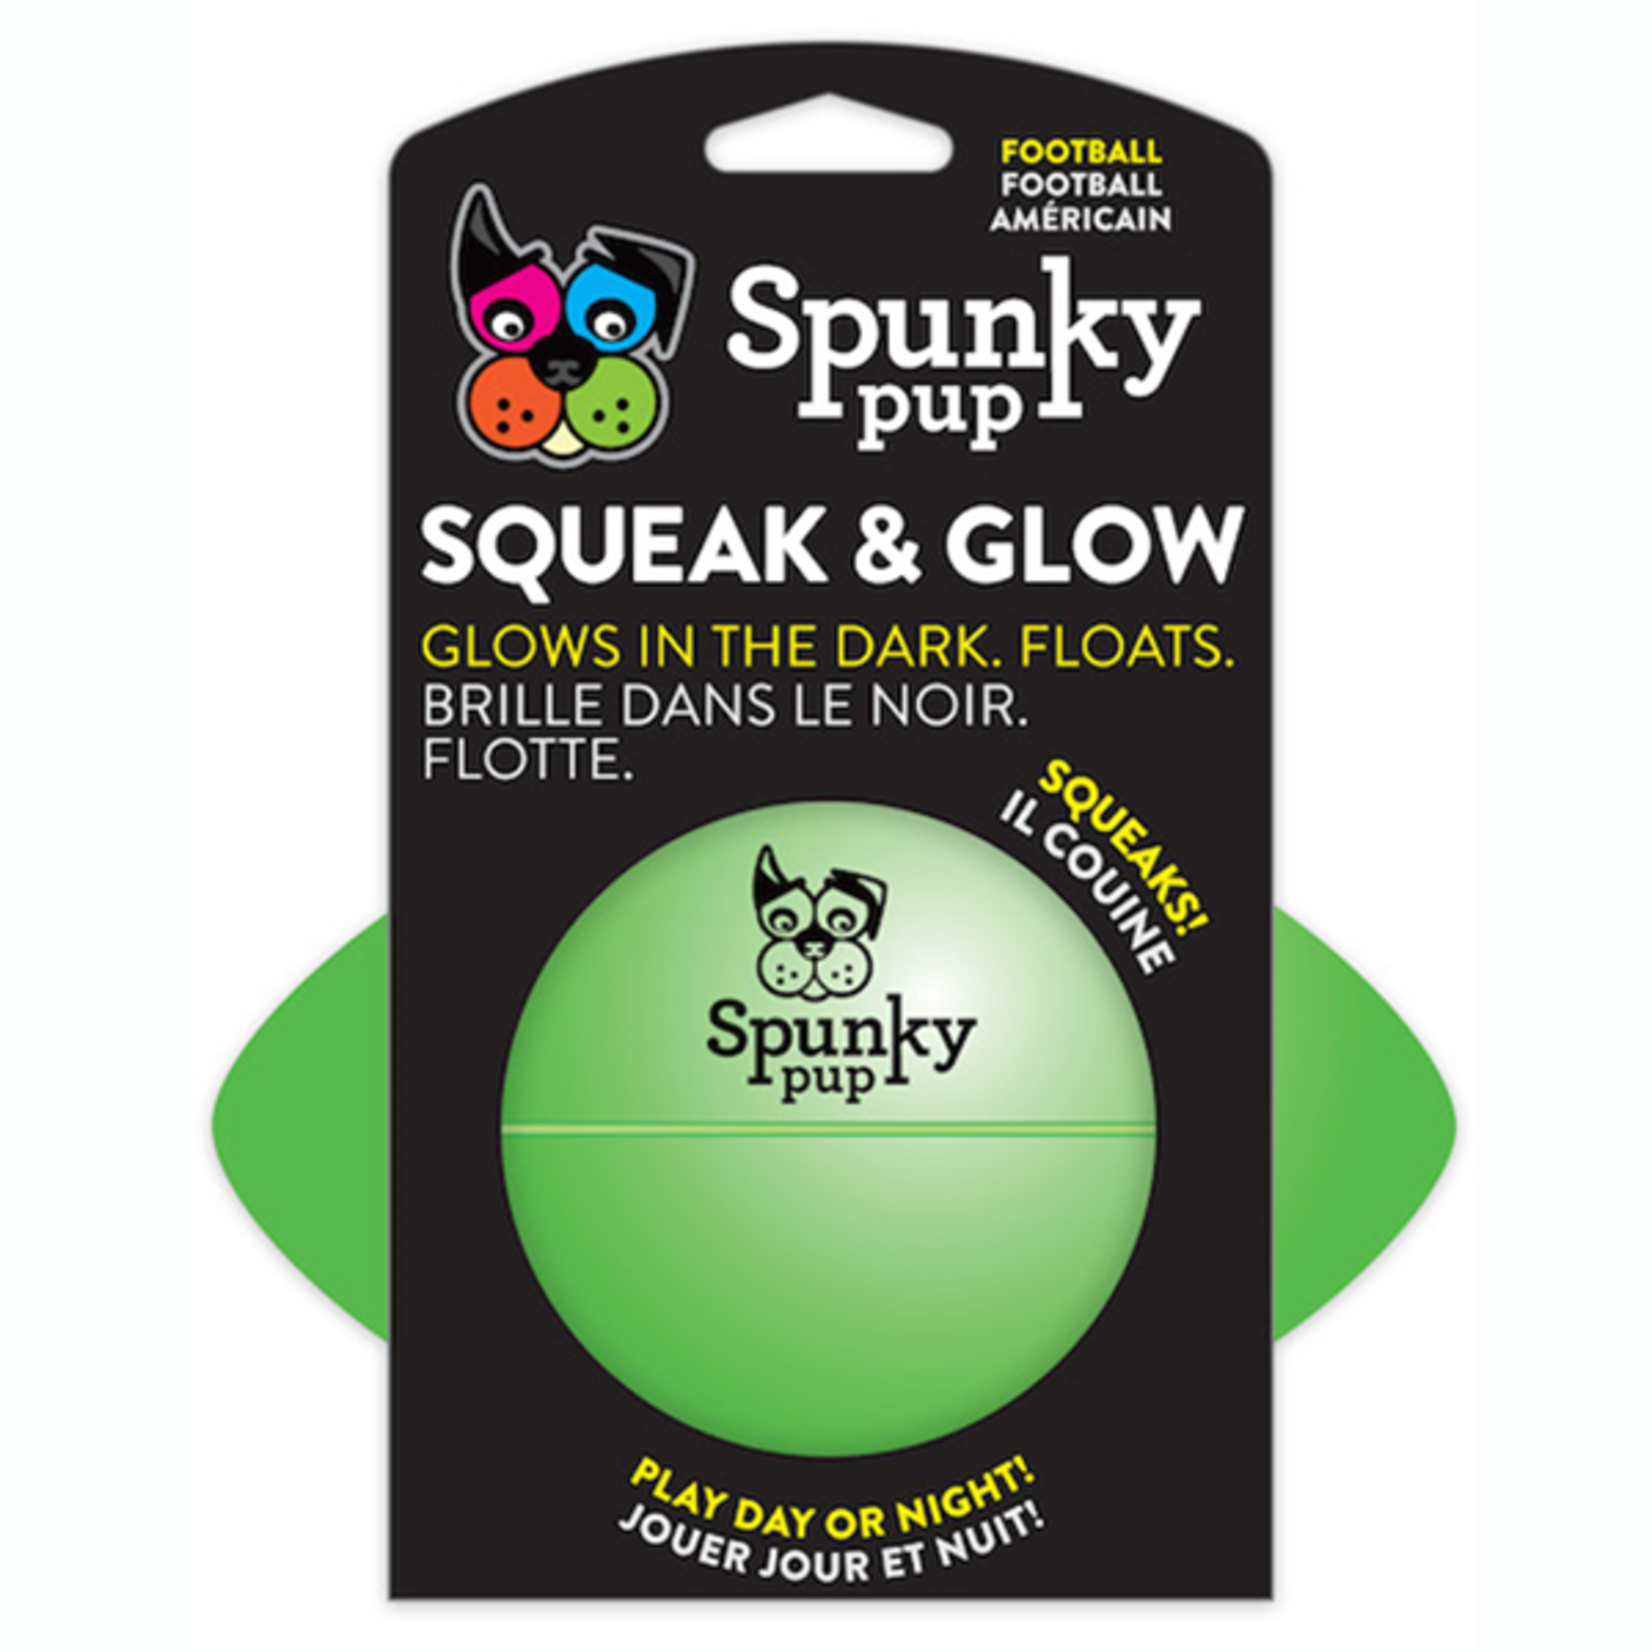 Spunky Pup Squeaky & Glow Football